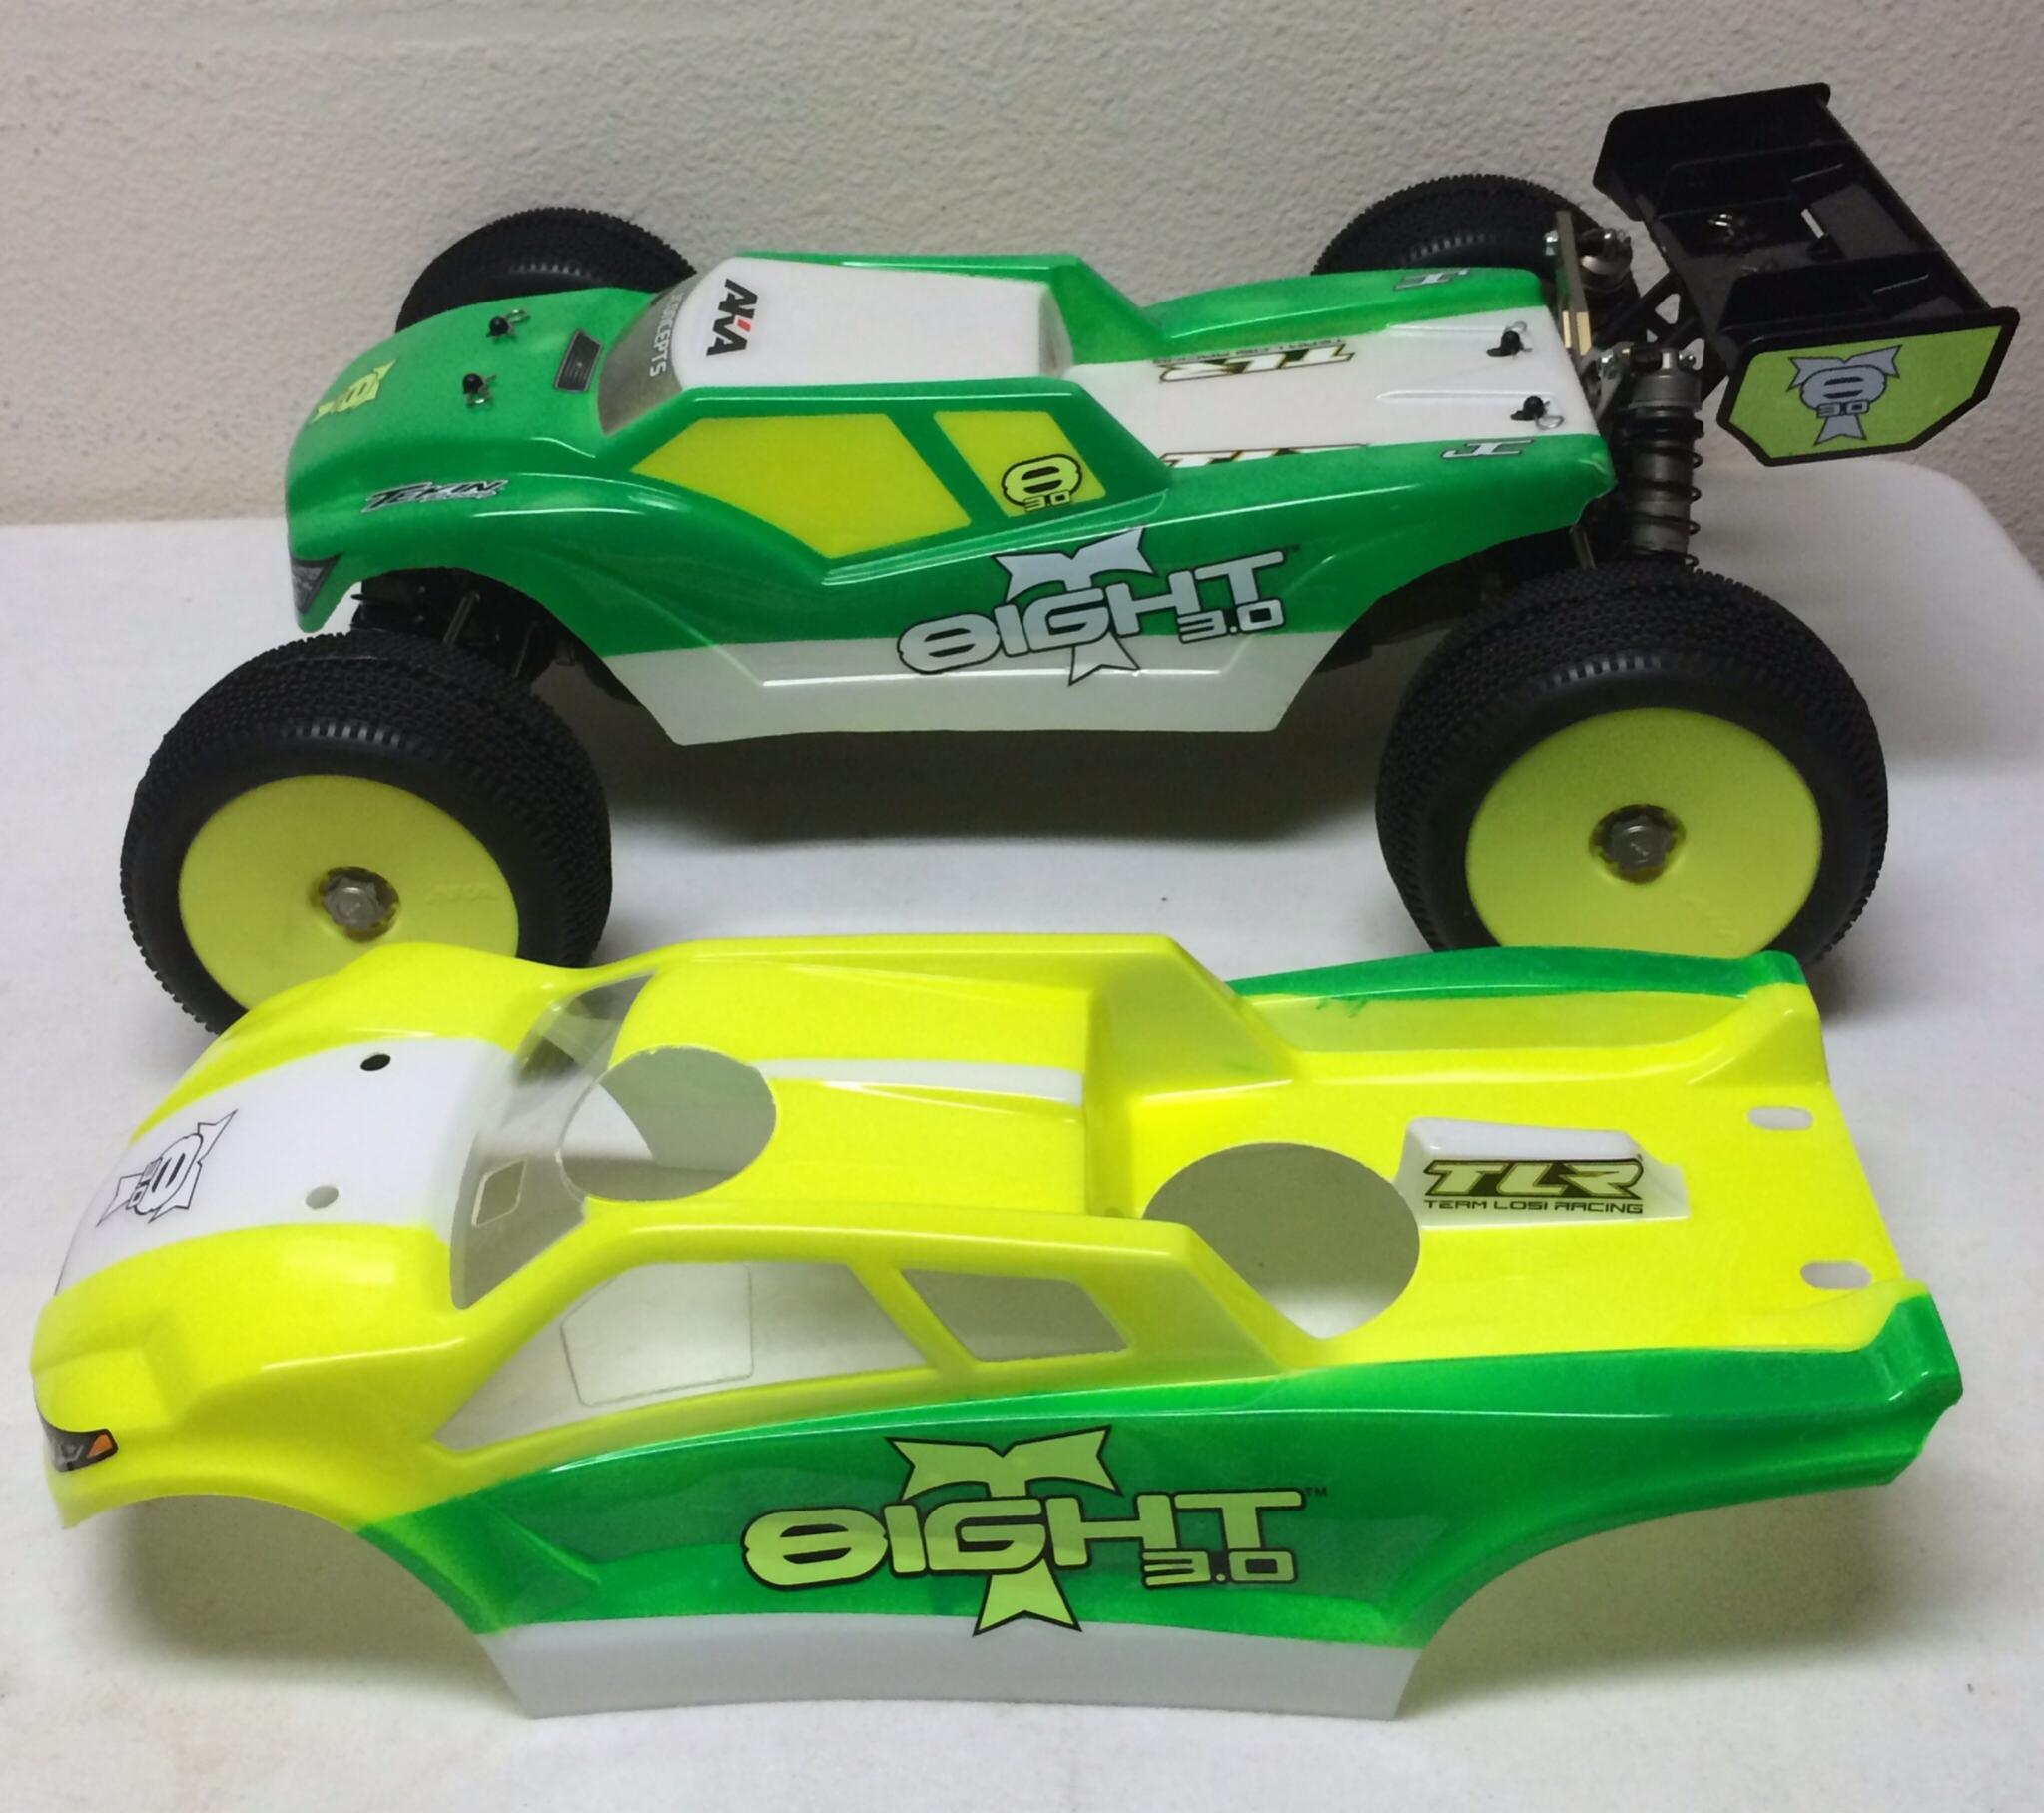 TLR 8ight T 3 0 body options image